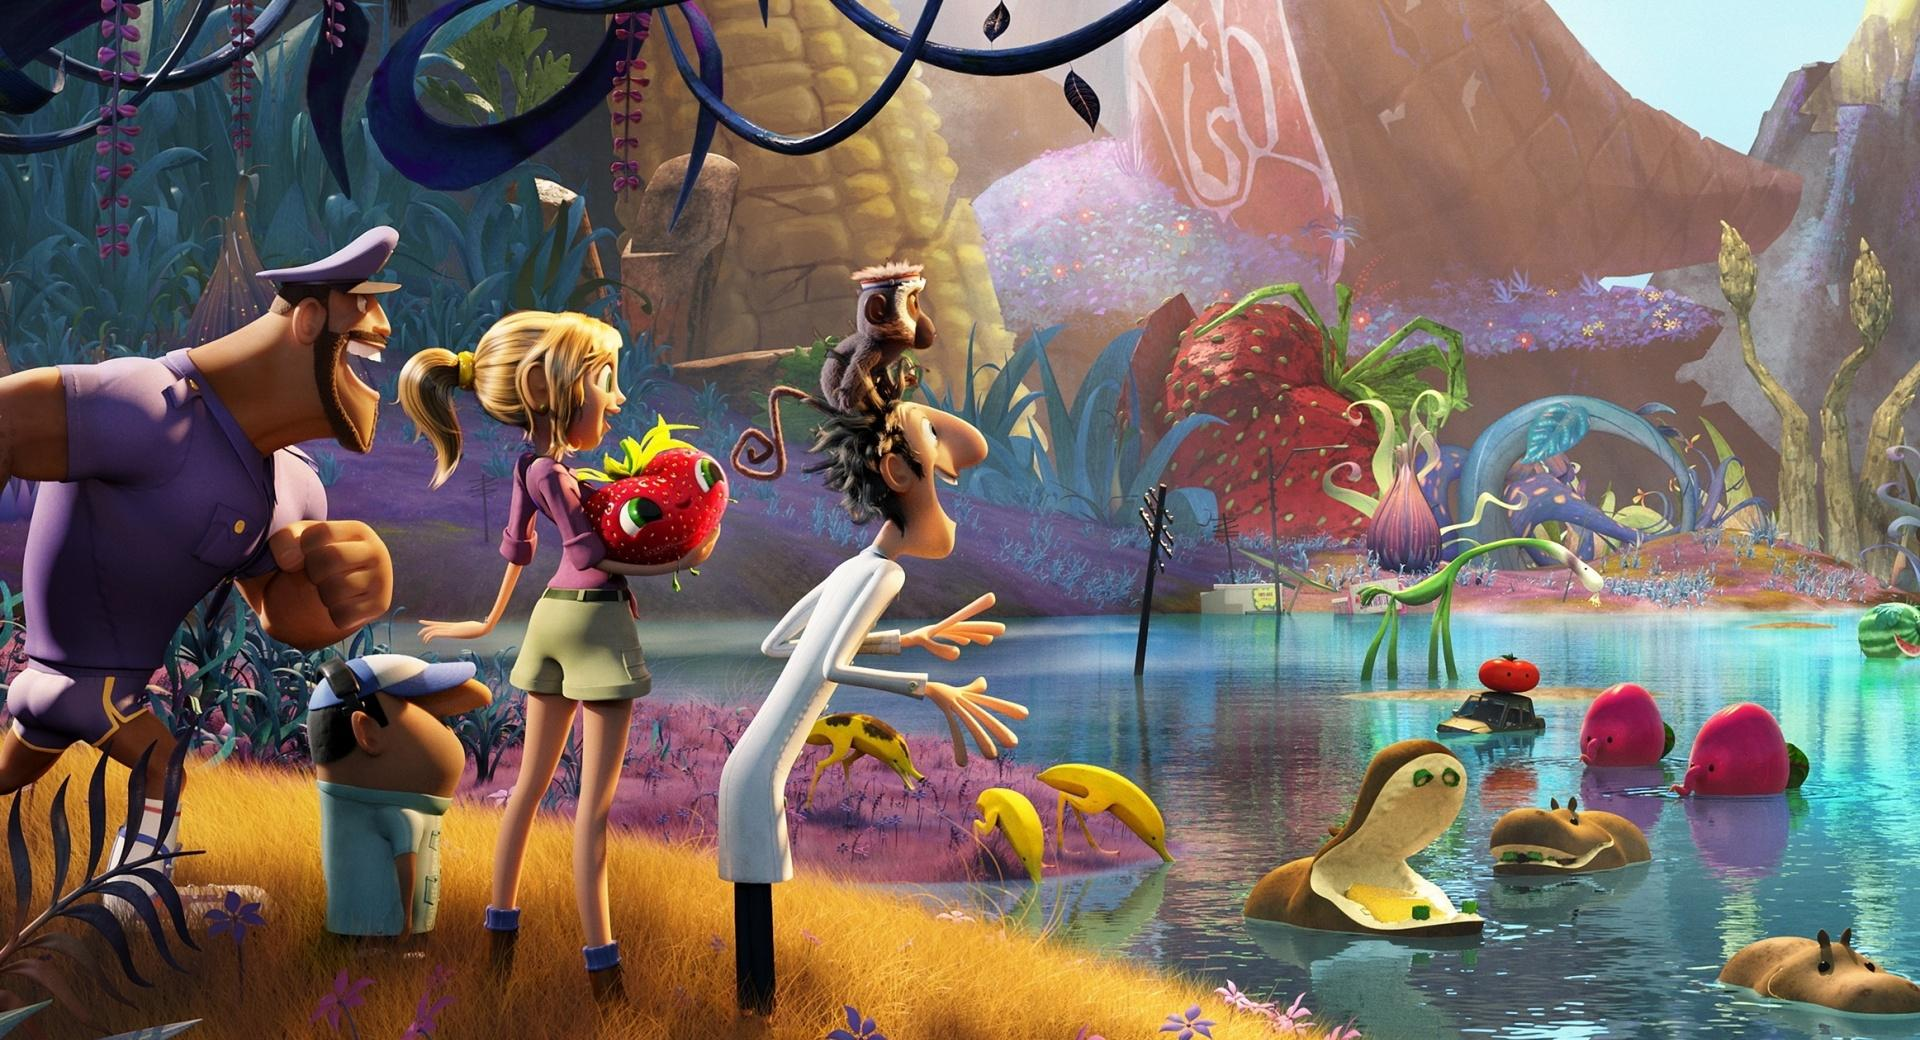 Cloudy with a Chance of Meatballs 2 2013 wallpapers HD quality